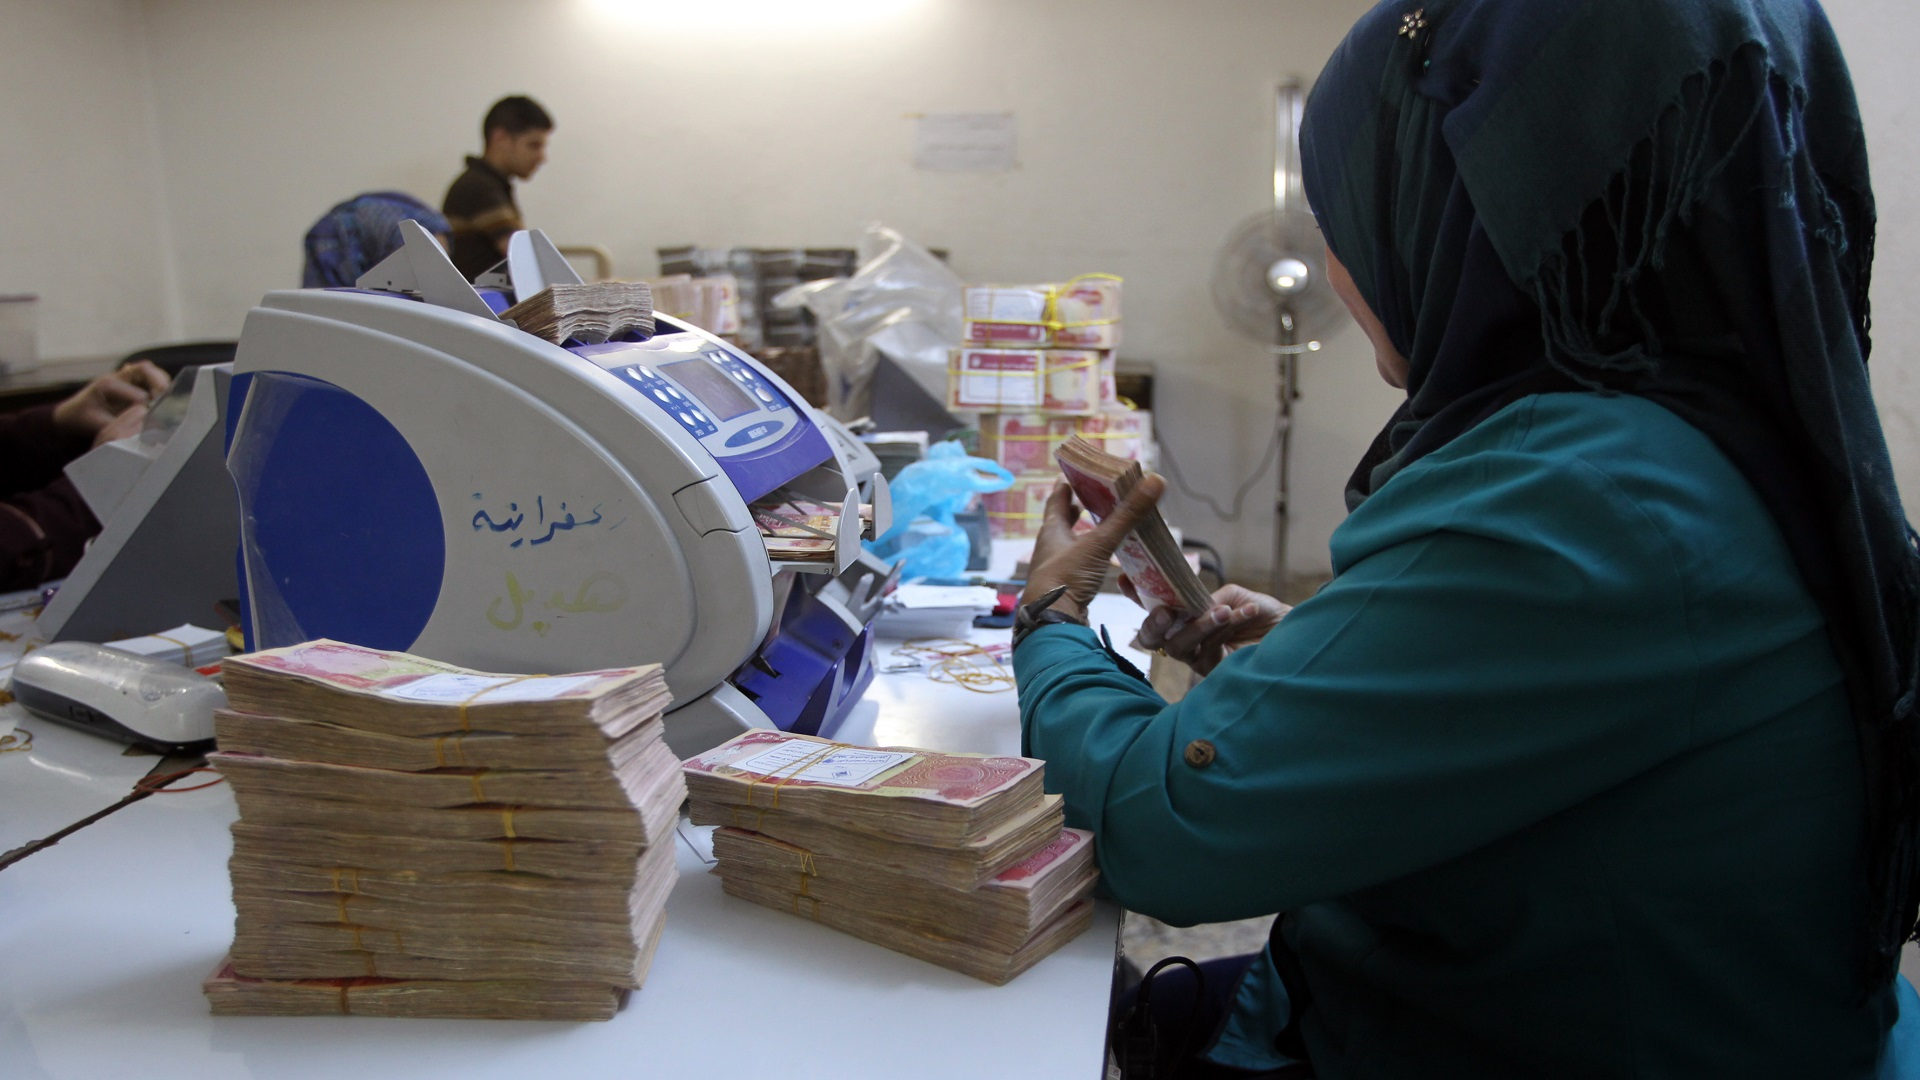 More than 4.8 million active bank accounts in Iraq